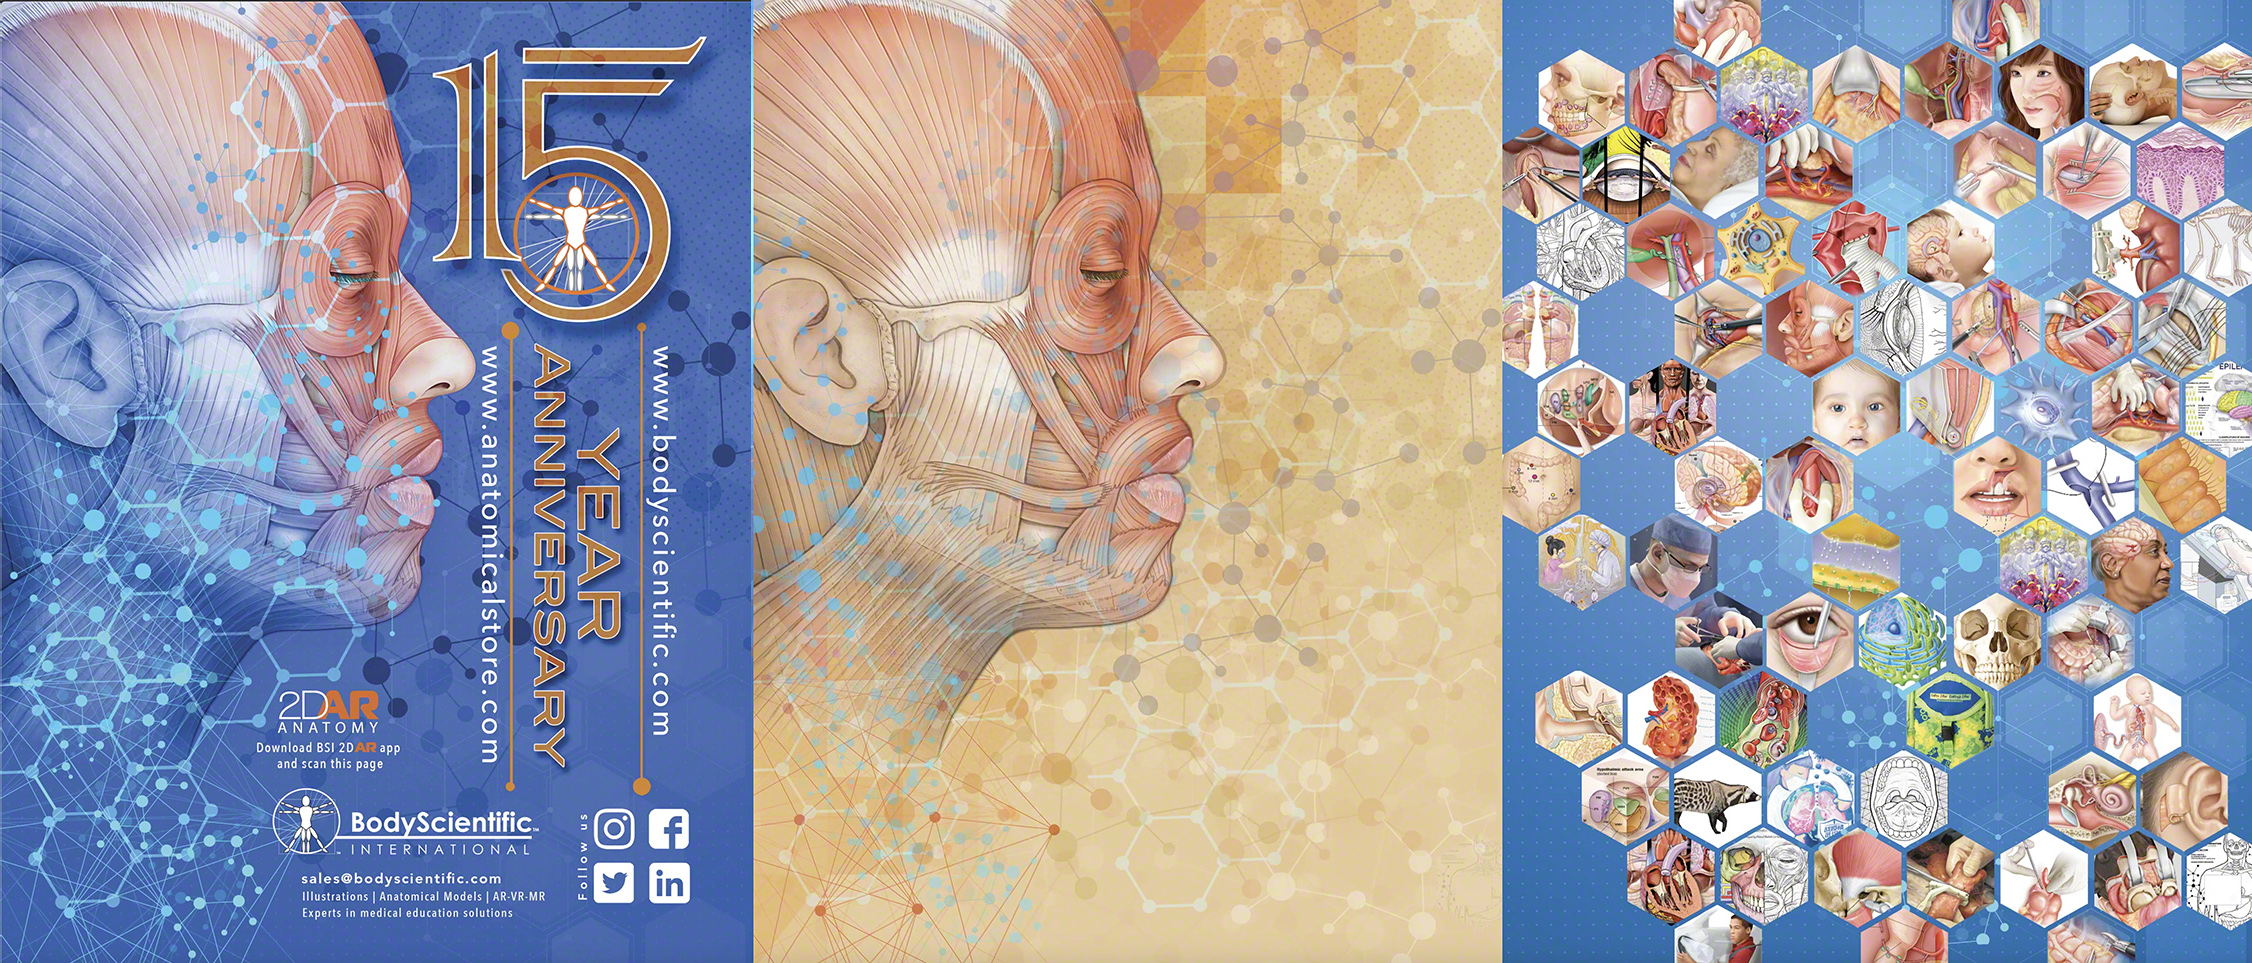 Animated cover illustration of body scientific's 15 year anniversary